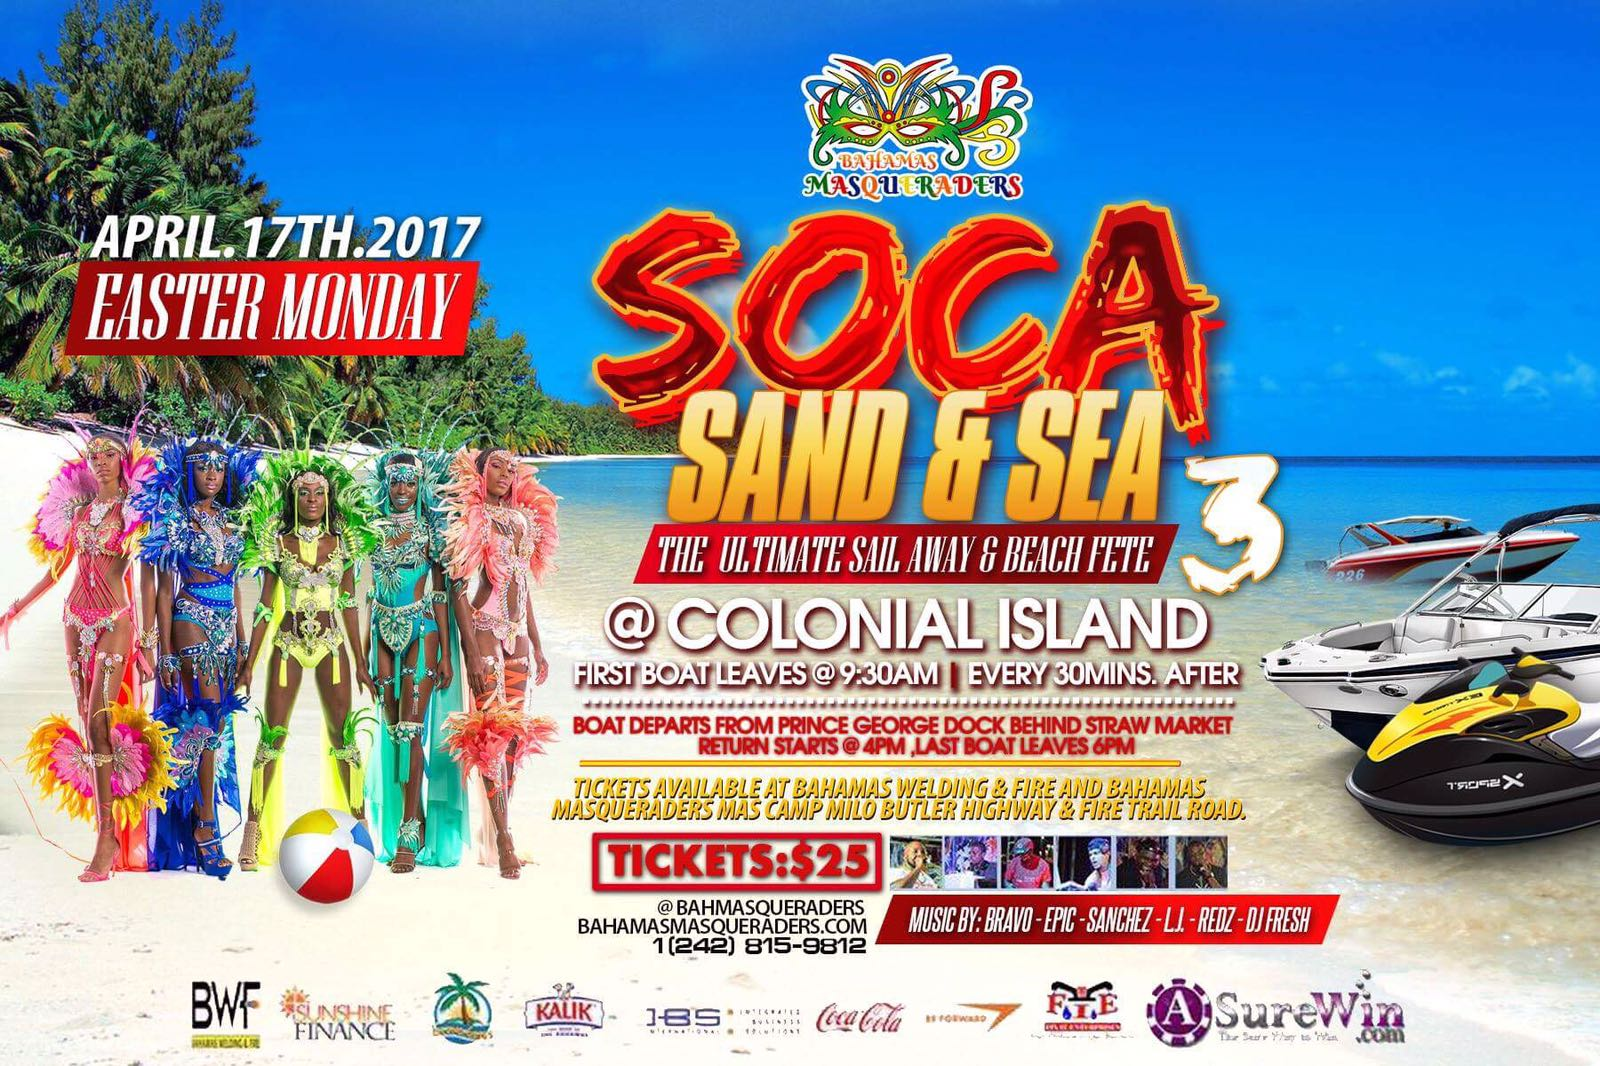 Bahamas Masqueraders Easter monday Sailaway April 17, 2017 - Bahamas Junkanoo Carnival